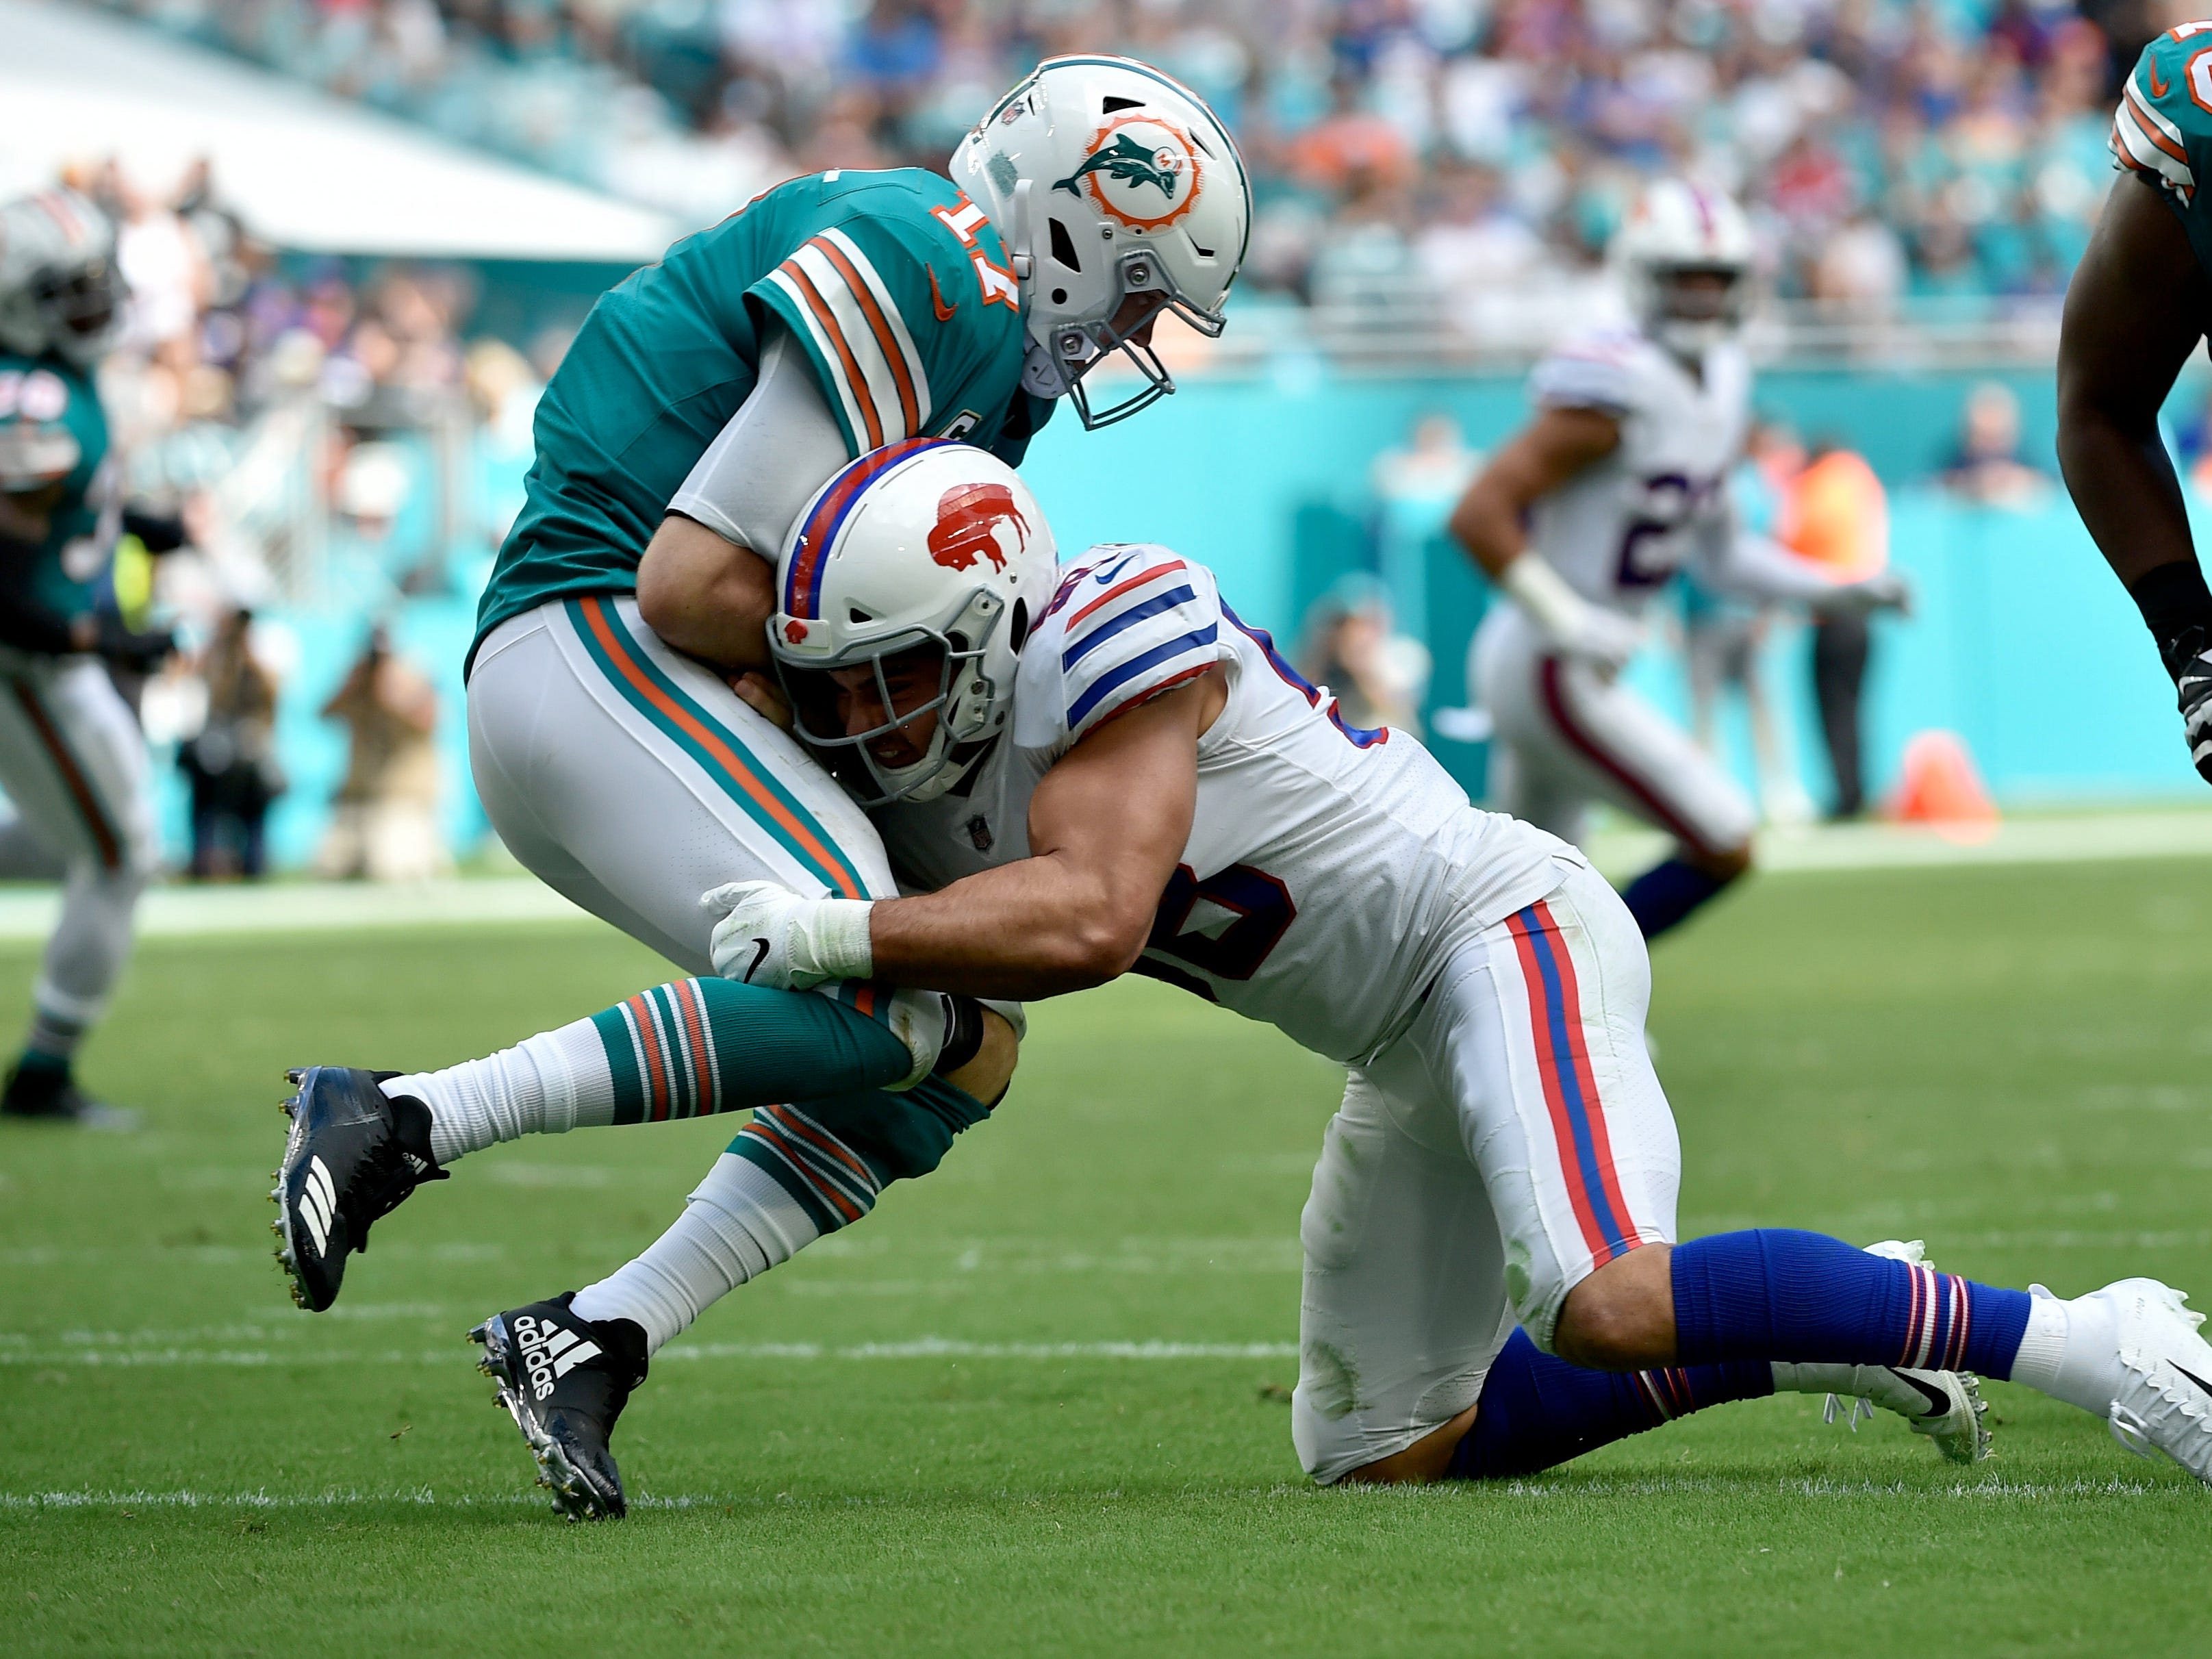 Buffalo Bills outside linebacker Matt Milano (58) tackles Miami Dolphins quarterback Ryan Tannehill (17) during the first half at Hard Rock Stadium.